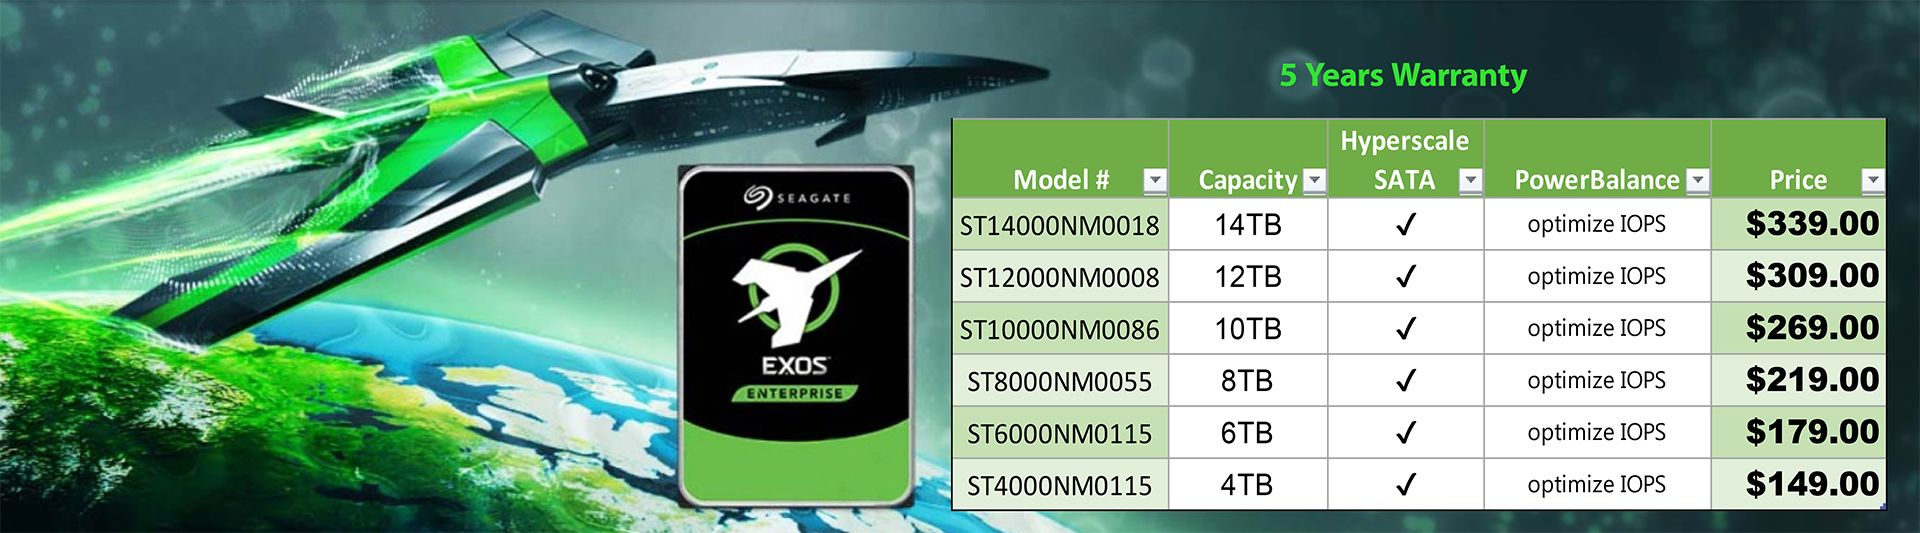 Seagate Exos background copy